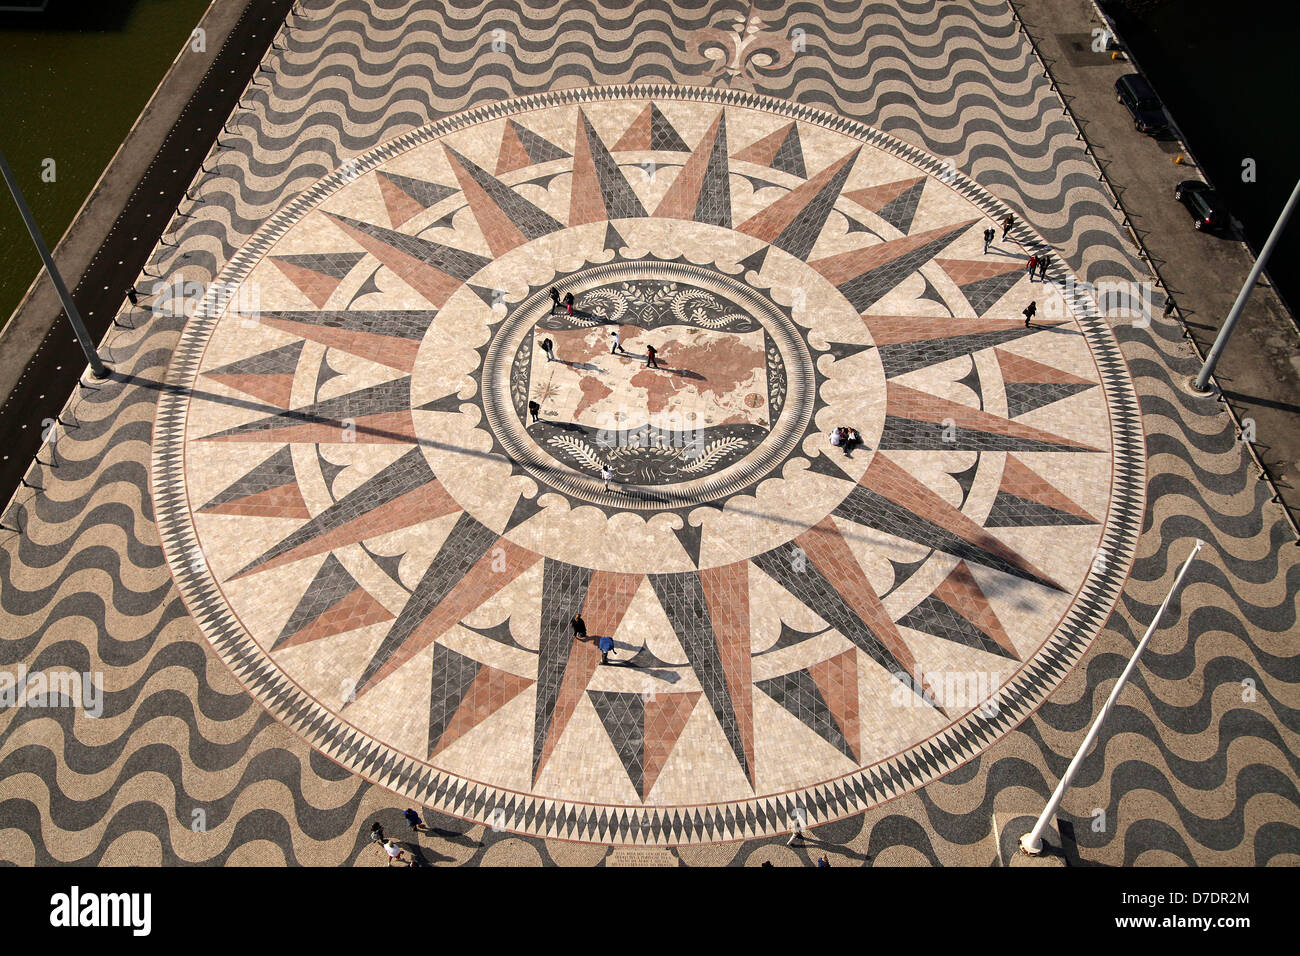 Giant Mosaic With Compass Rose And World Map At The Monument To The